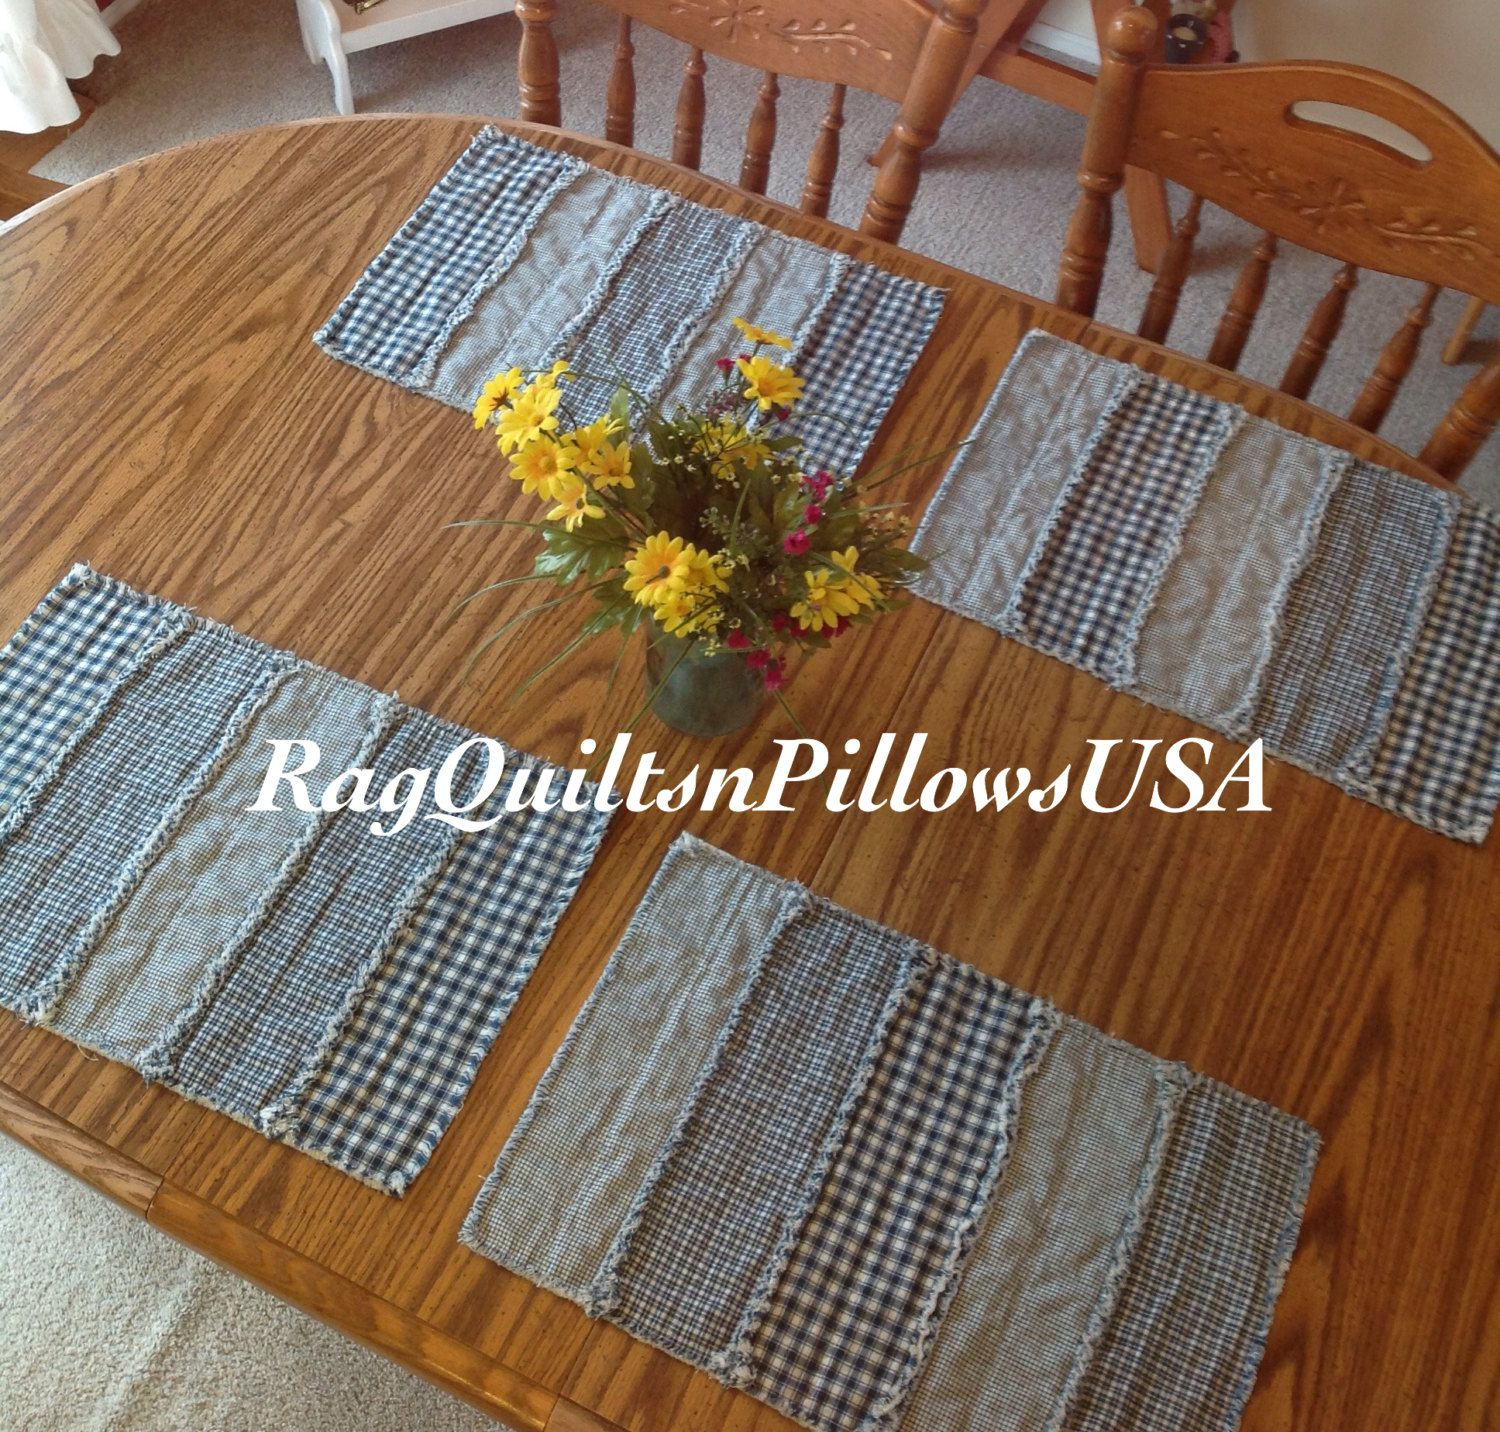 Quilted Placemats Country Placemats Set 2 Primitive Country Western Decor Rustic Placemats Homespun Handmade Rag Strip Blue White & Quilted Placemats Country Placemats Set 2 Primitive Country ...